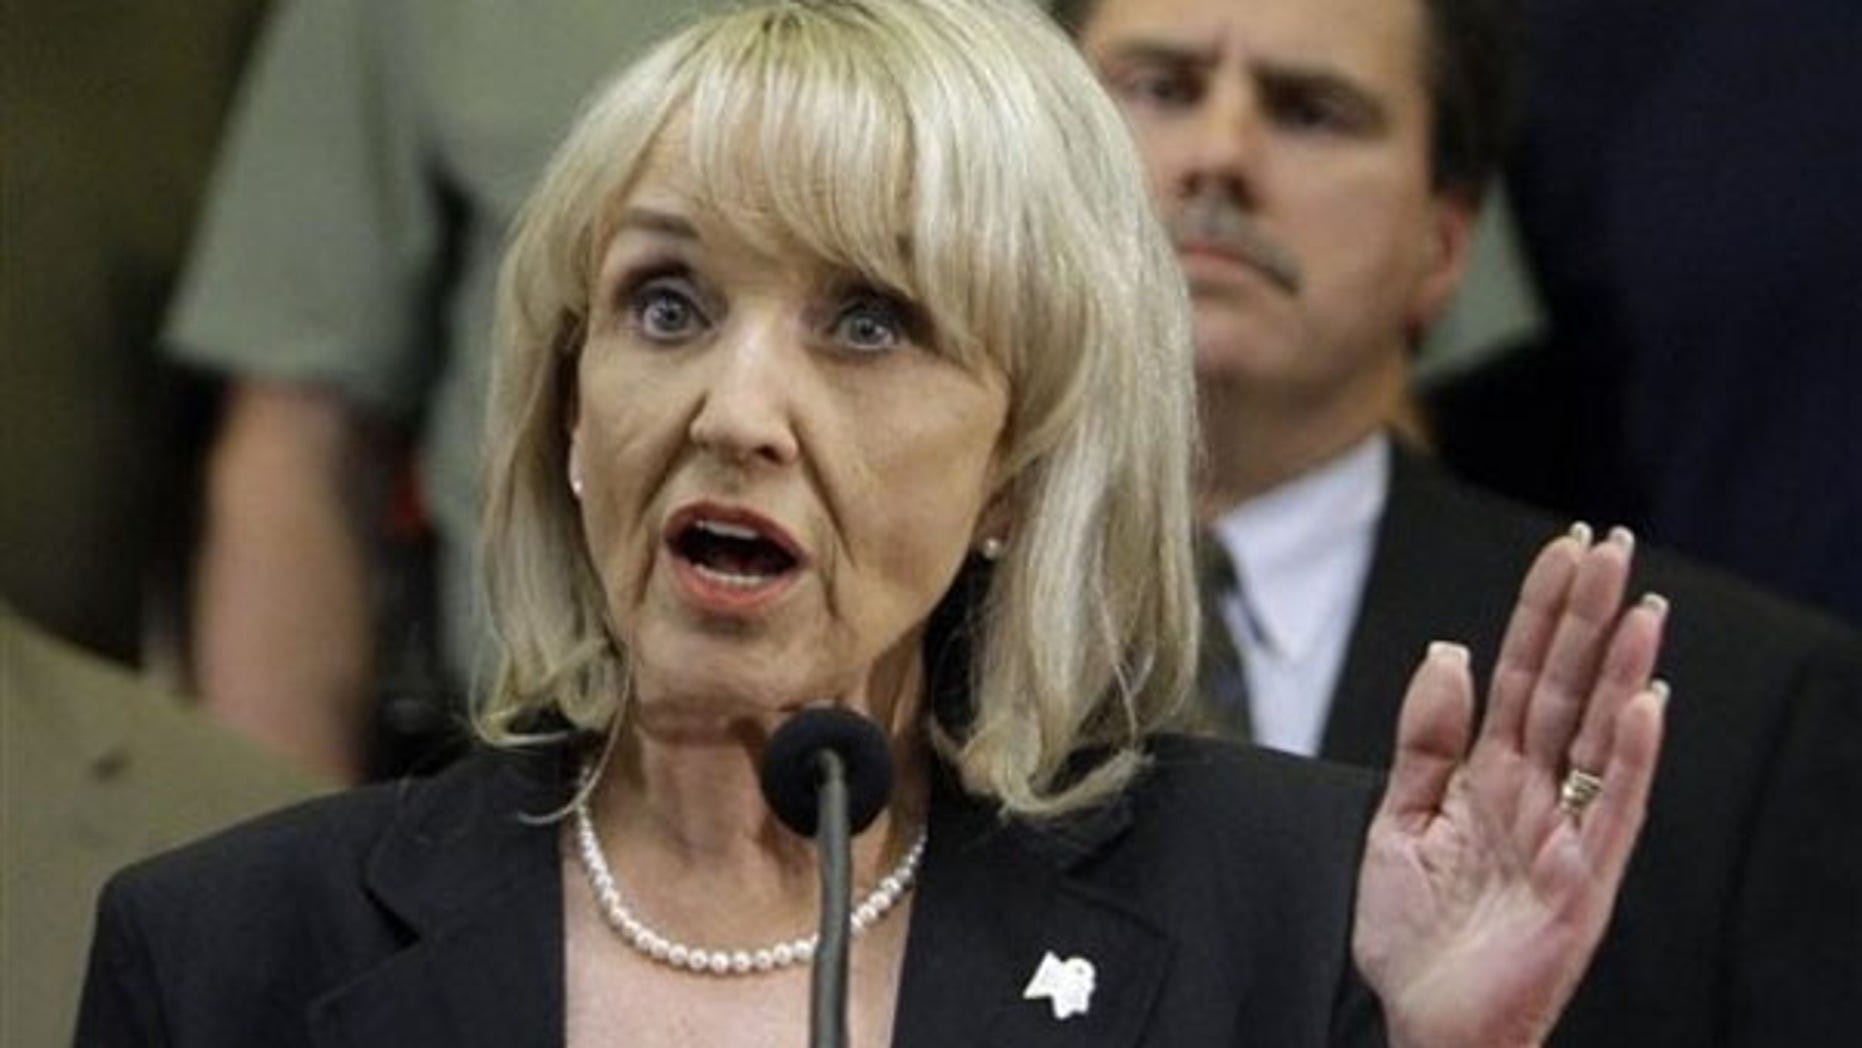 Arizona Gov. Jan Brewer is shown here discussing her state's controversial immigration bill April 23 in Phoenix. (AP Photo)